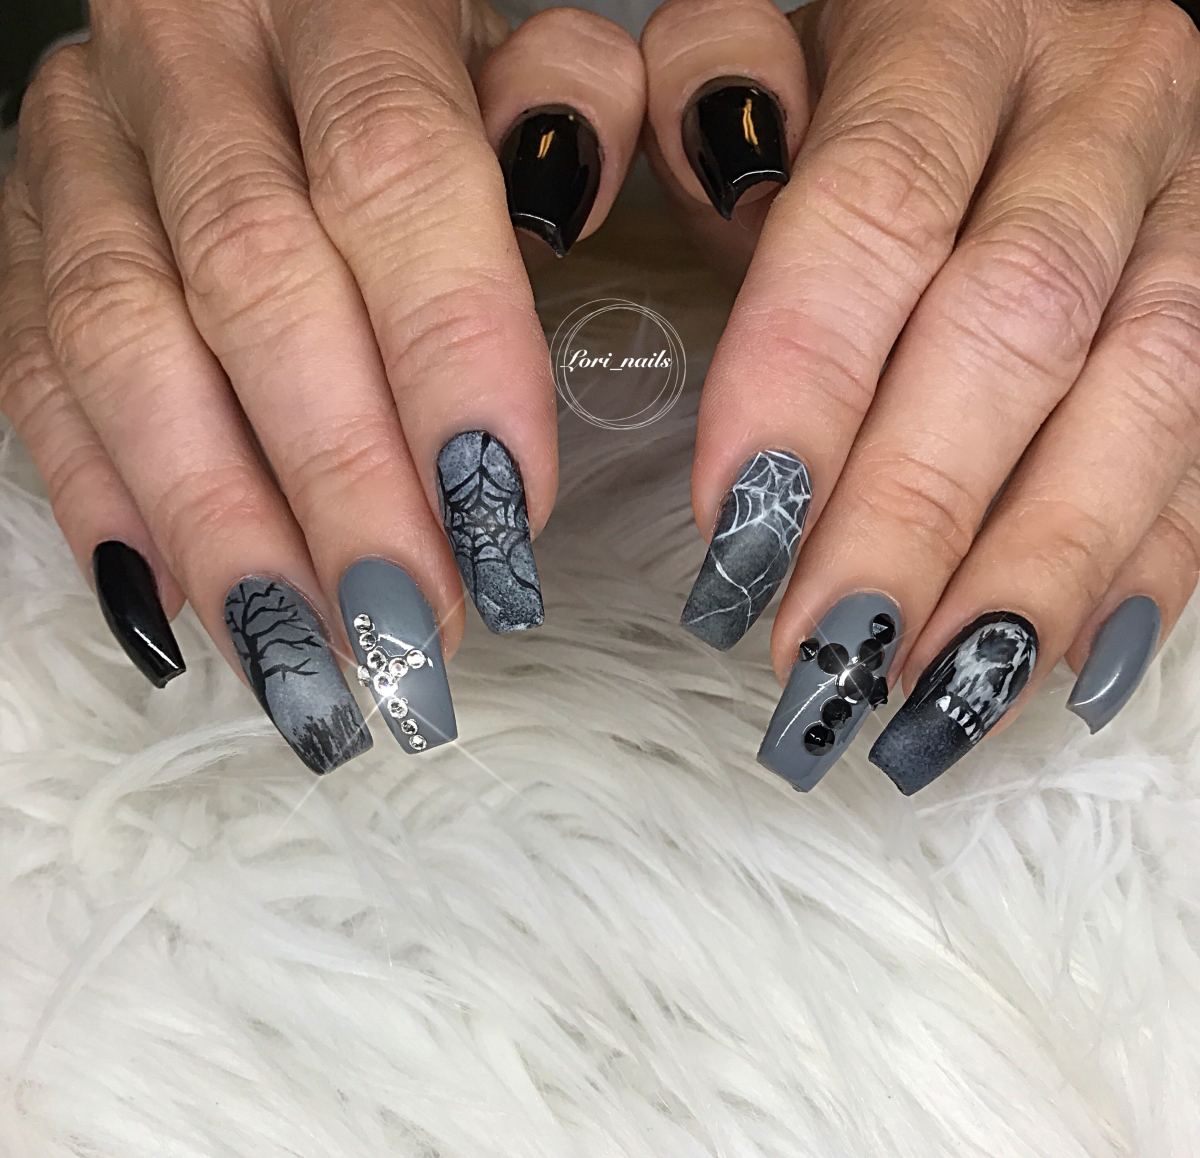 gray-and-black-halloween-nails-with-spiderwebs-and-swarovski-crystals